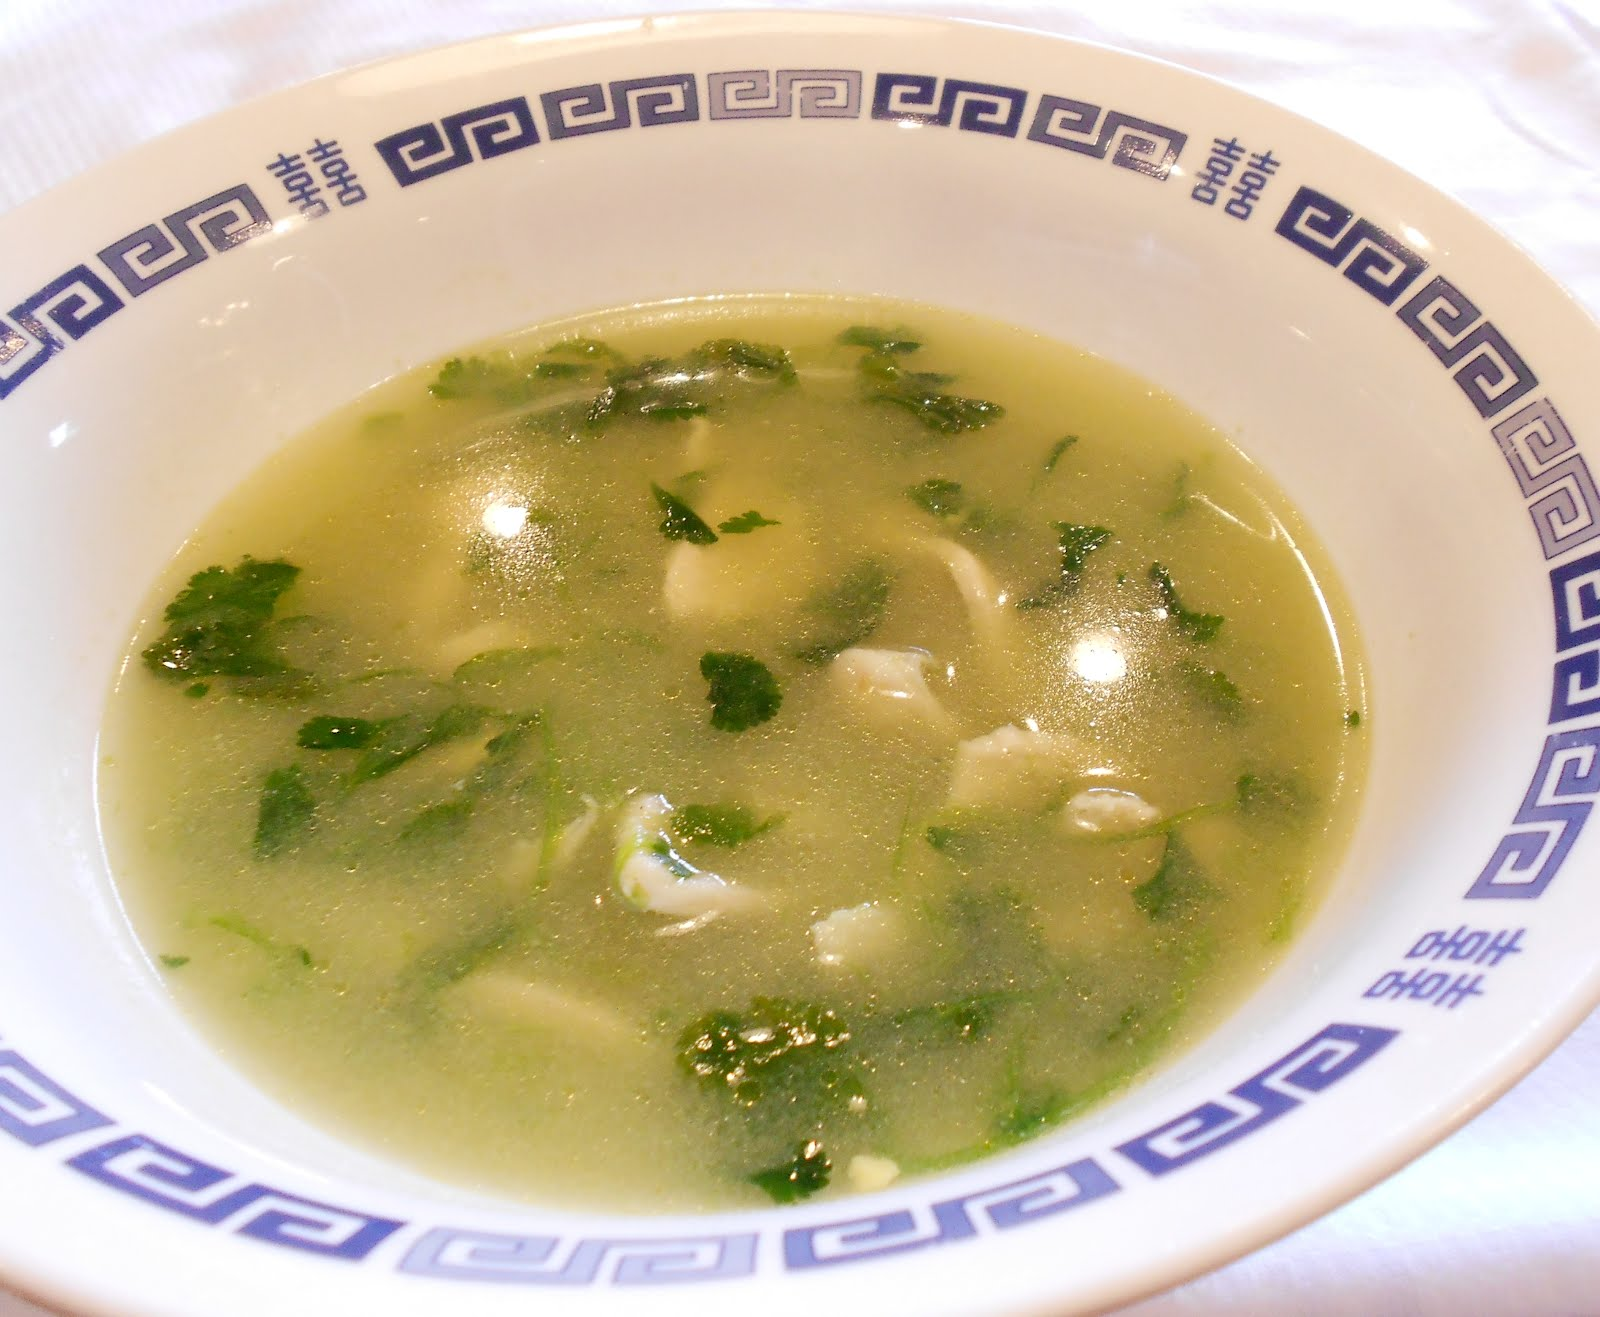 Delicious healing soup which is fantastic for sore throats and